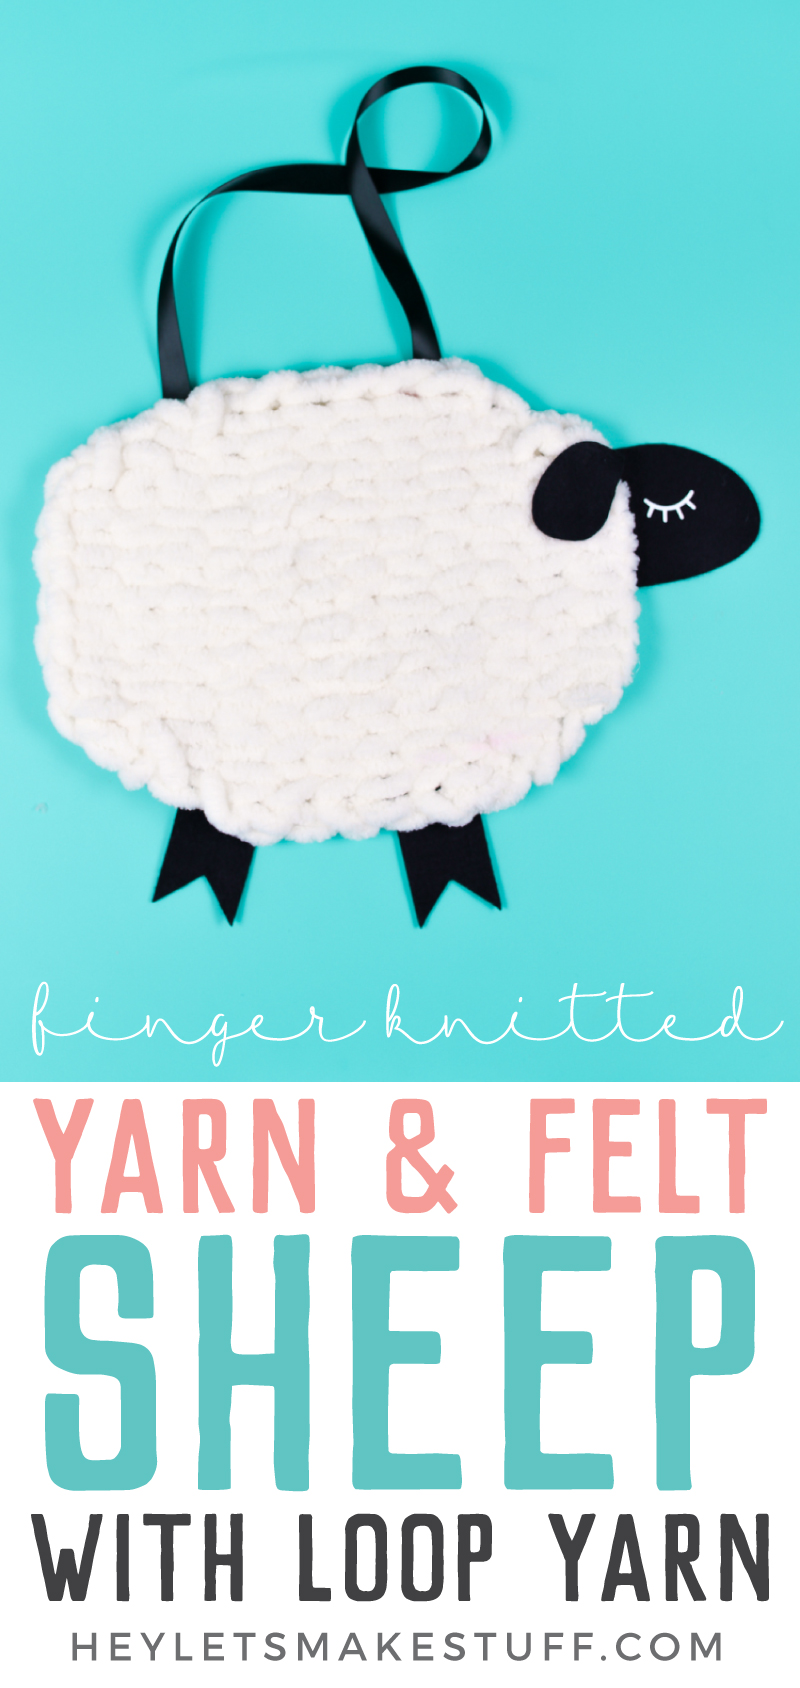 Have you tried loop yarn? Use this super-soft Bernat Alize Blanket-EZ yarn to knit without needles! Use it to create this adorable nursery decor: a yarn and felt sheep wall hanging! via @heyletsmakestuf